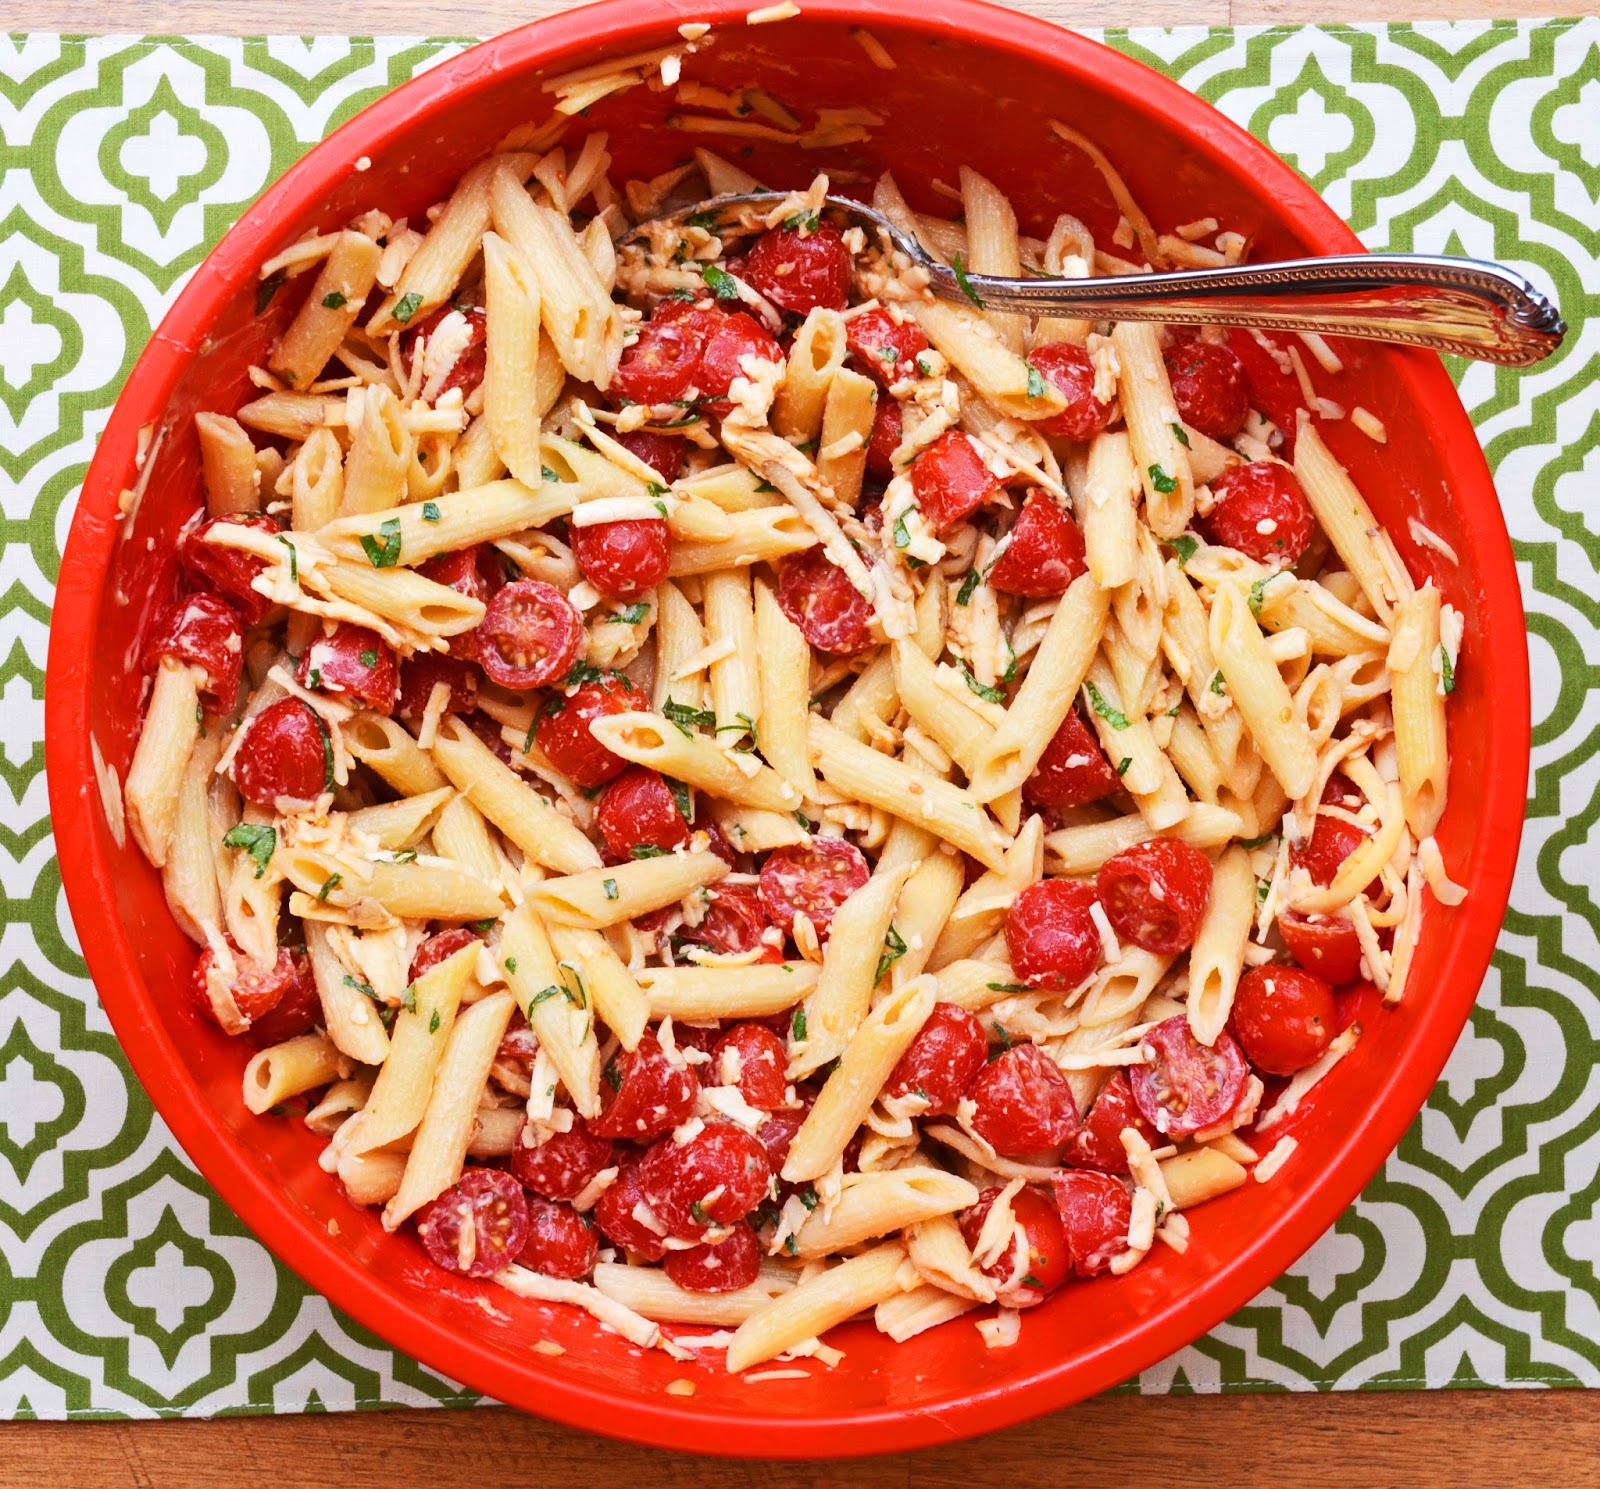 Spicy Pasta Salad With Smoked Gouda, Tomatoes, And Basil Recipe ...